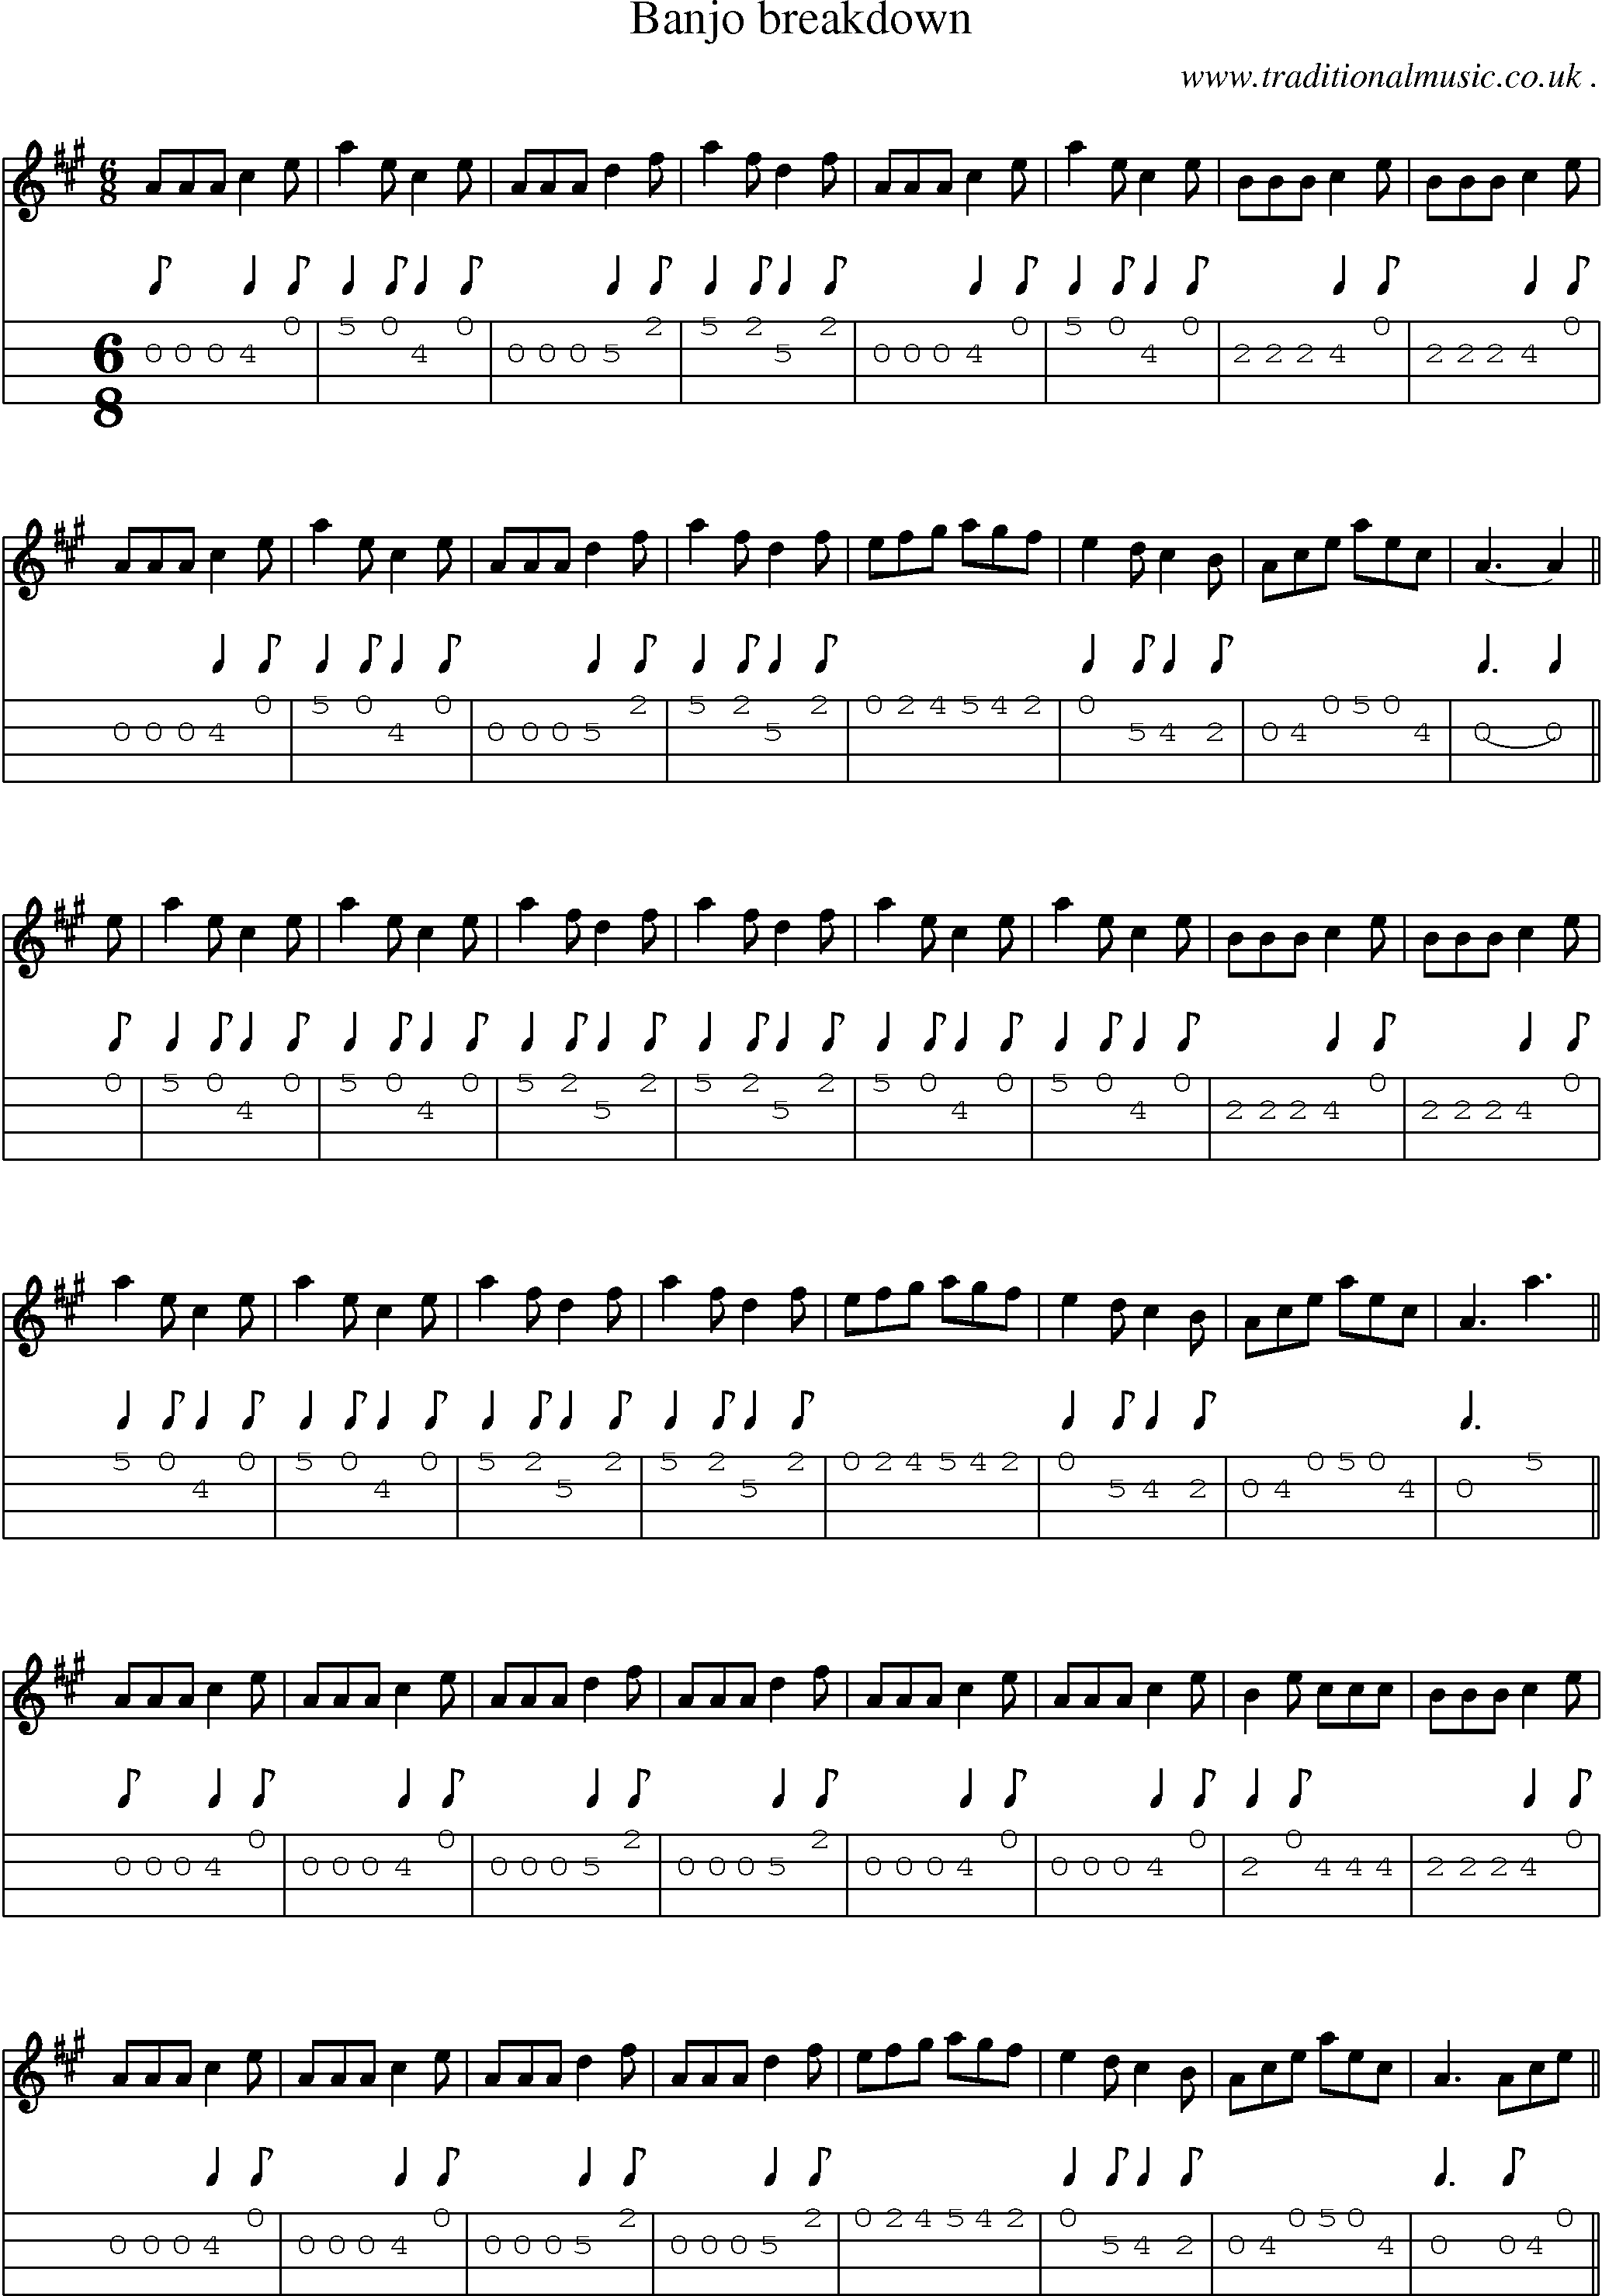 American Old-time music, Scores and Tabs for Mandolin - Banjo Breakdown